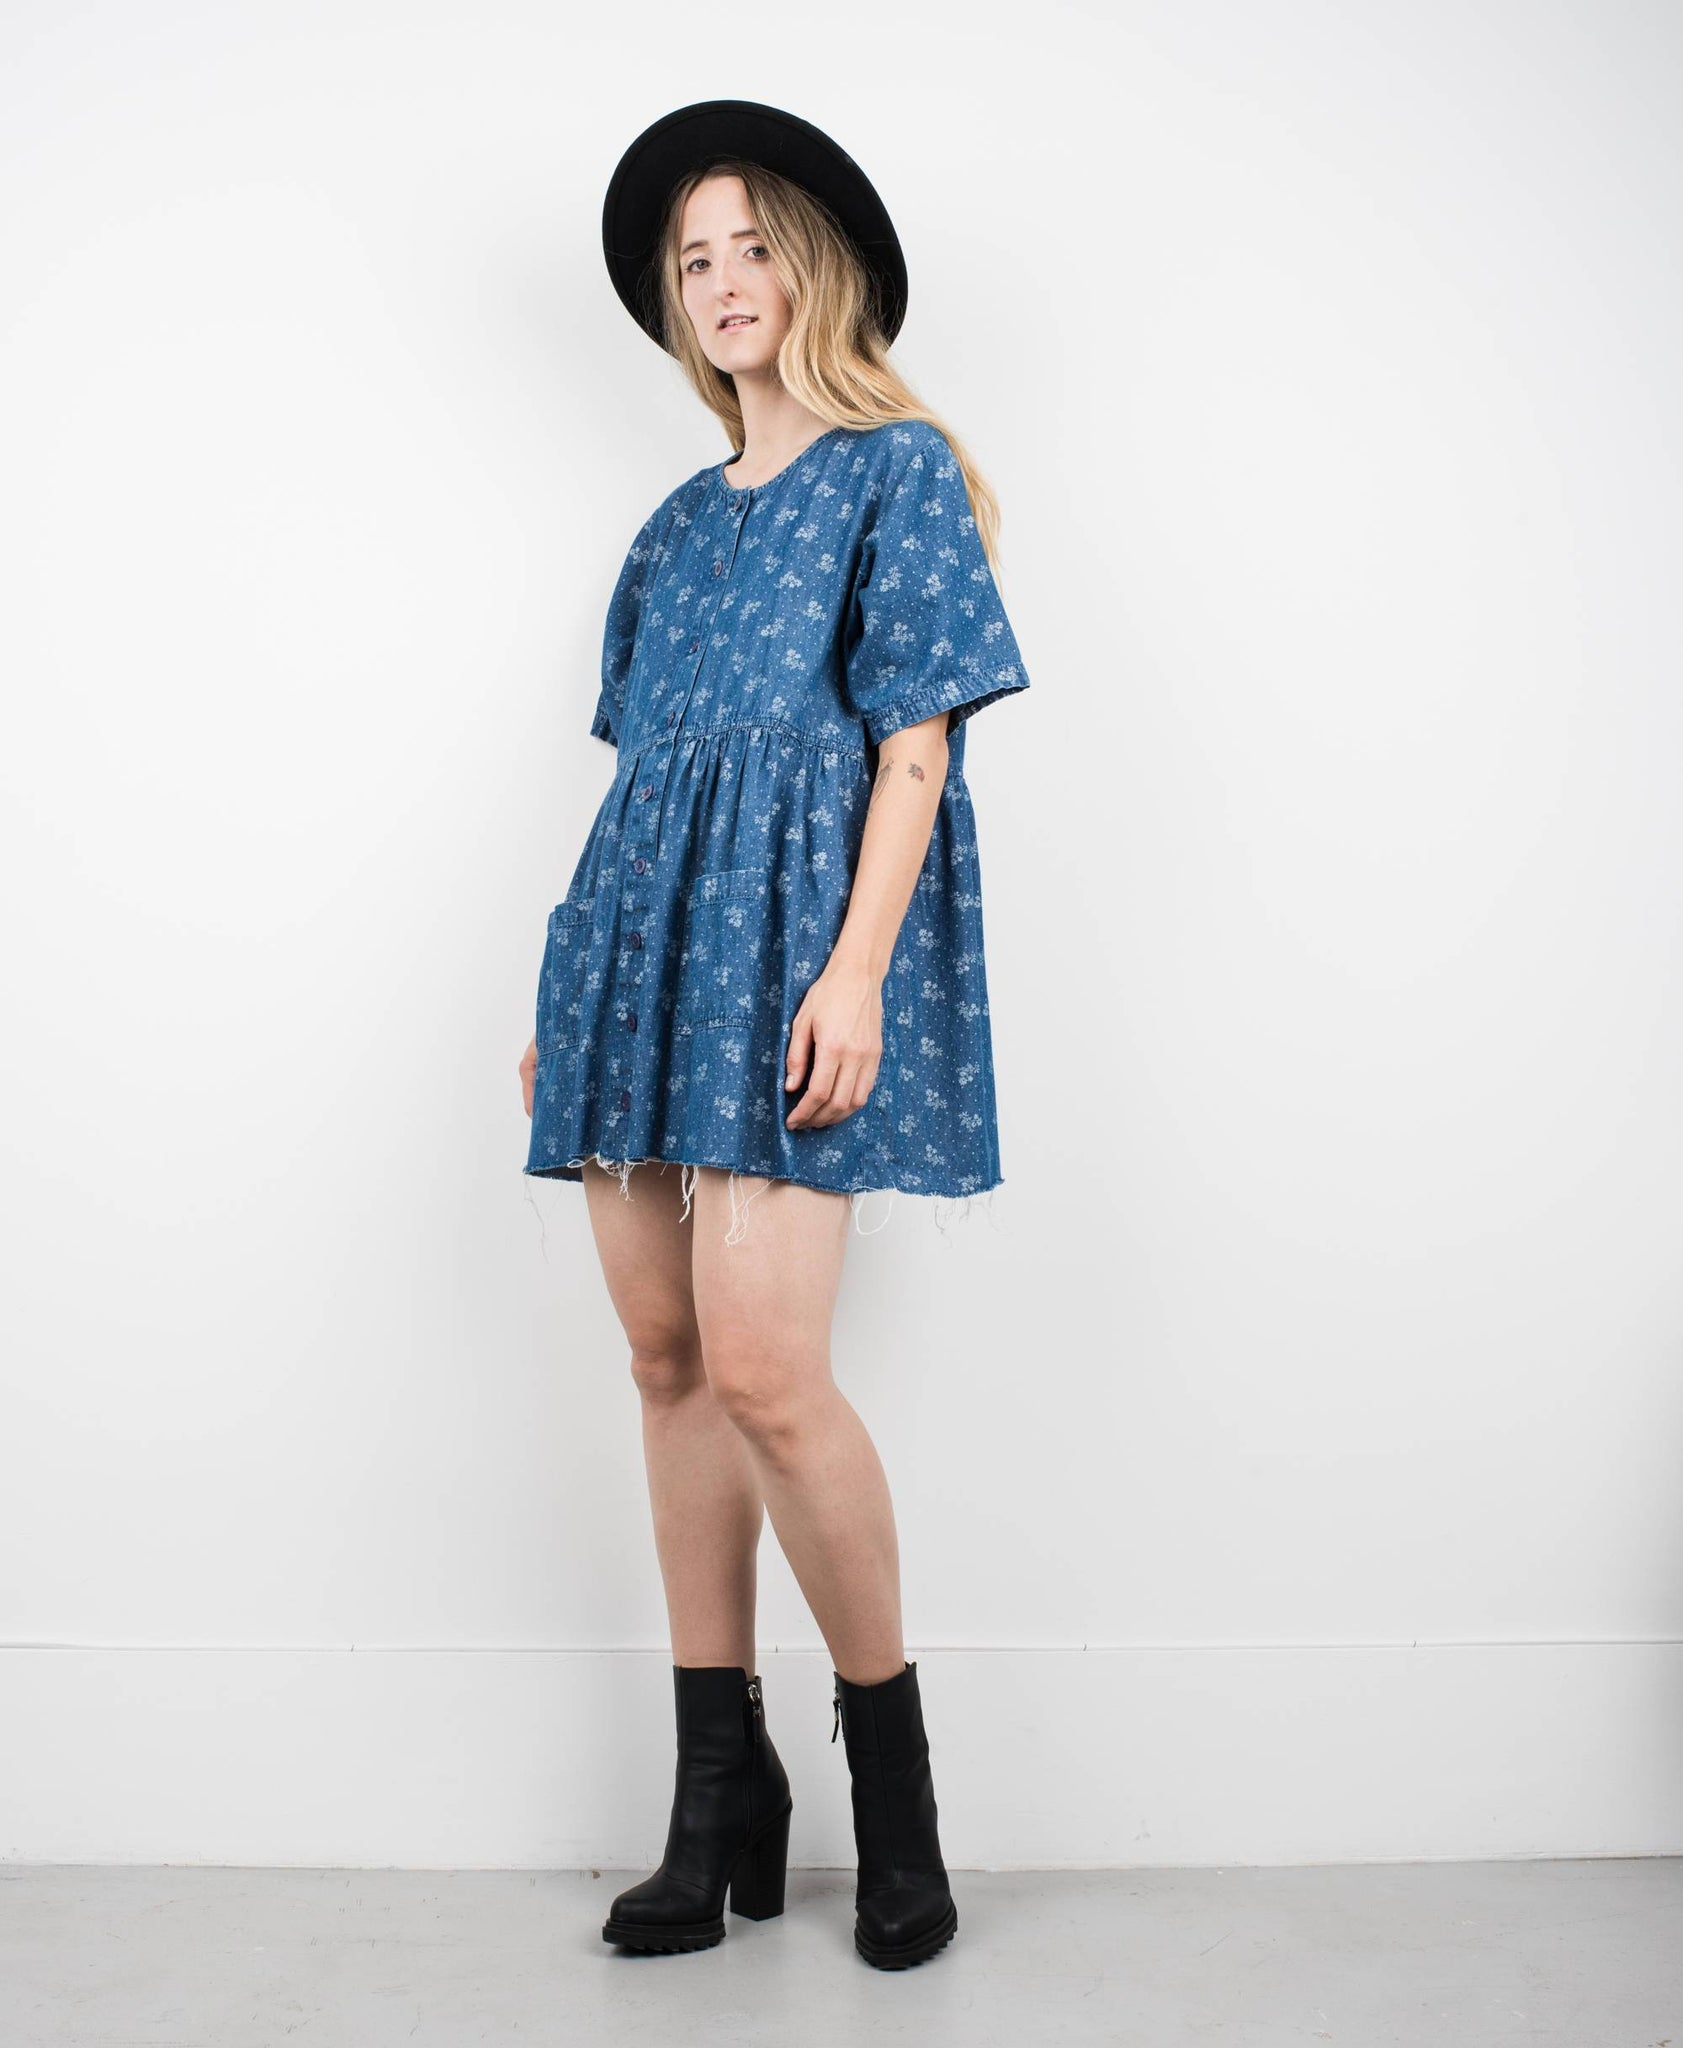 Vintage Short Sleeve Floral Denim Dress / S - Closed Caption